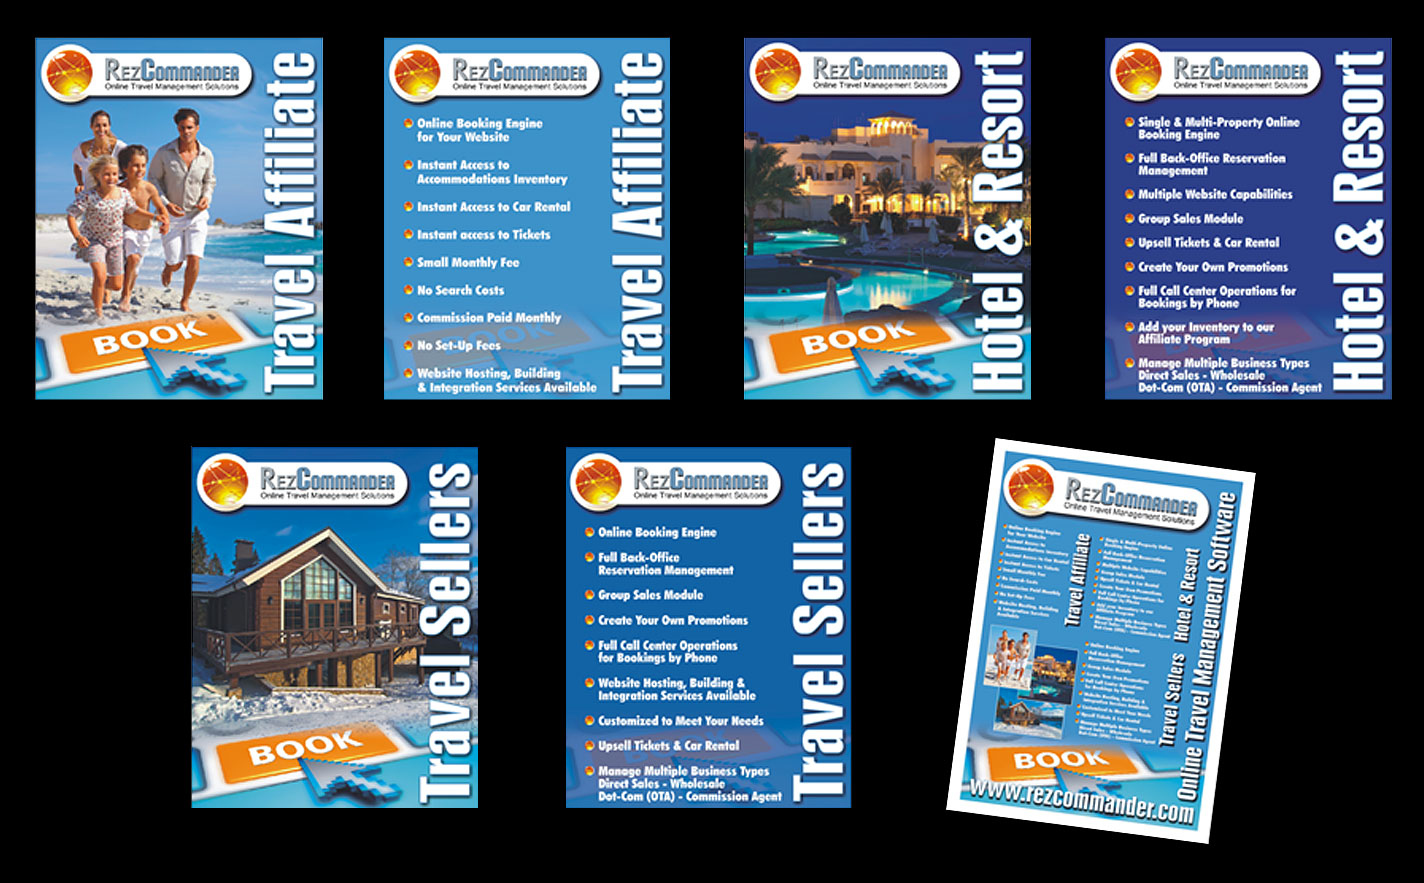 Display - Set of 6 AO Display Panels and printed leaflet for Rez Commander Booking Software, Florida - Sealed AO Prints on PVC backing sheet. - Design, Artwork & Production.